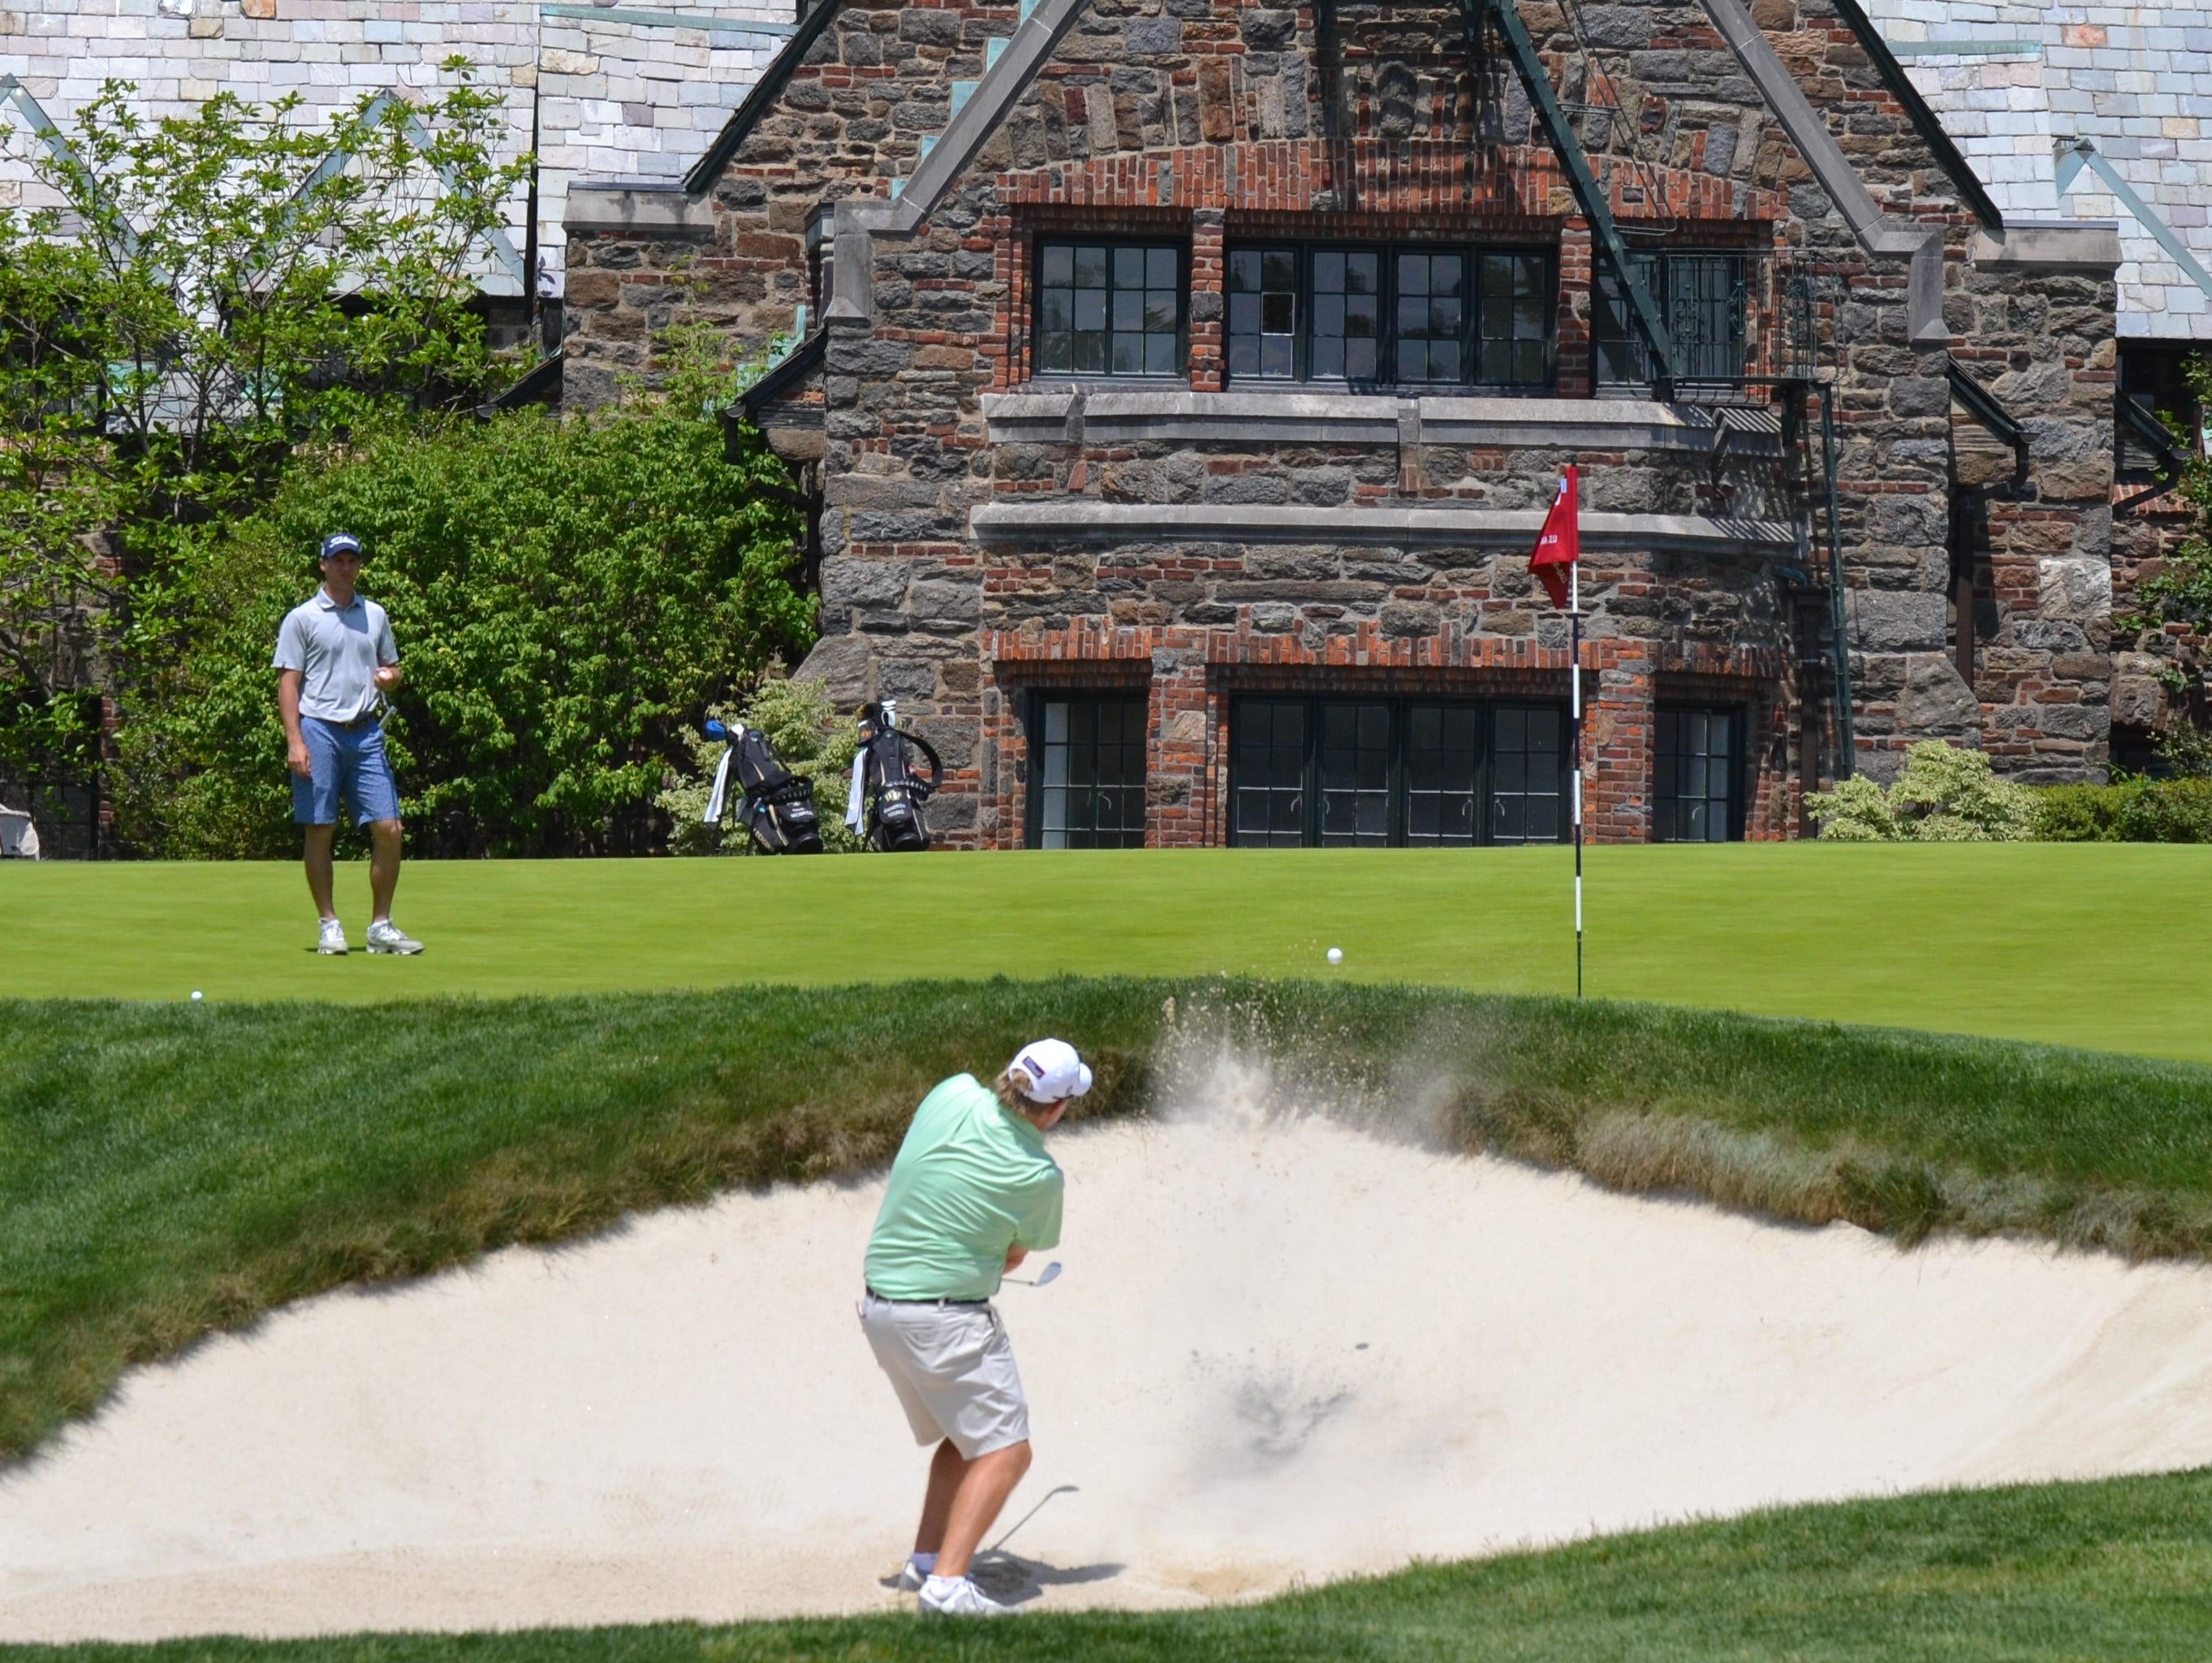 Patrick Christovich blasts out of a bunker onto the 10th green on Winged Foot East during a Round of 32 win in the U.S. Amateur Four-Ball Championship on Monday.